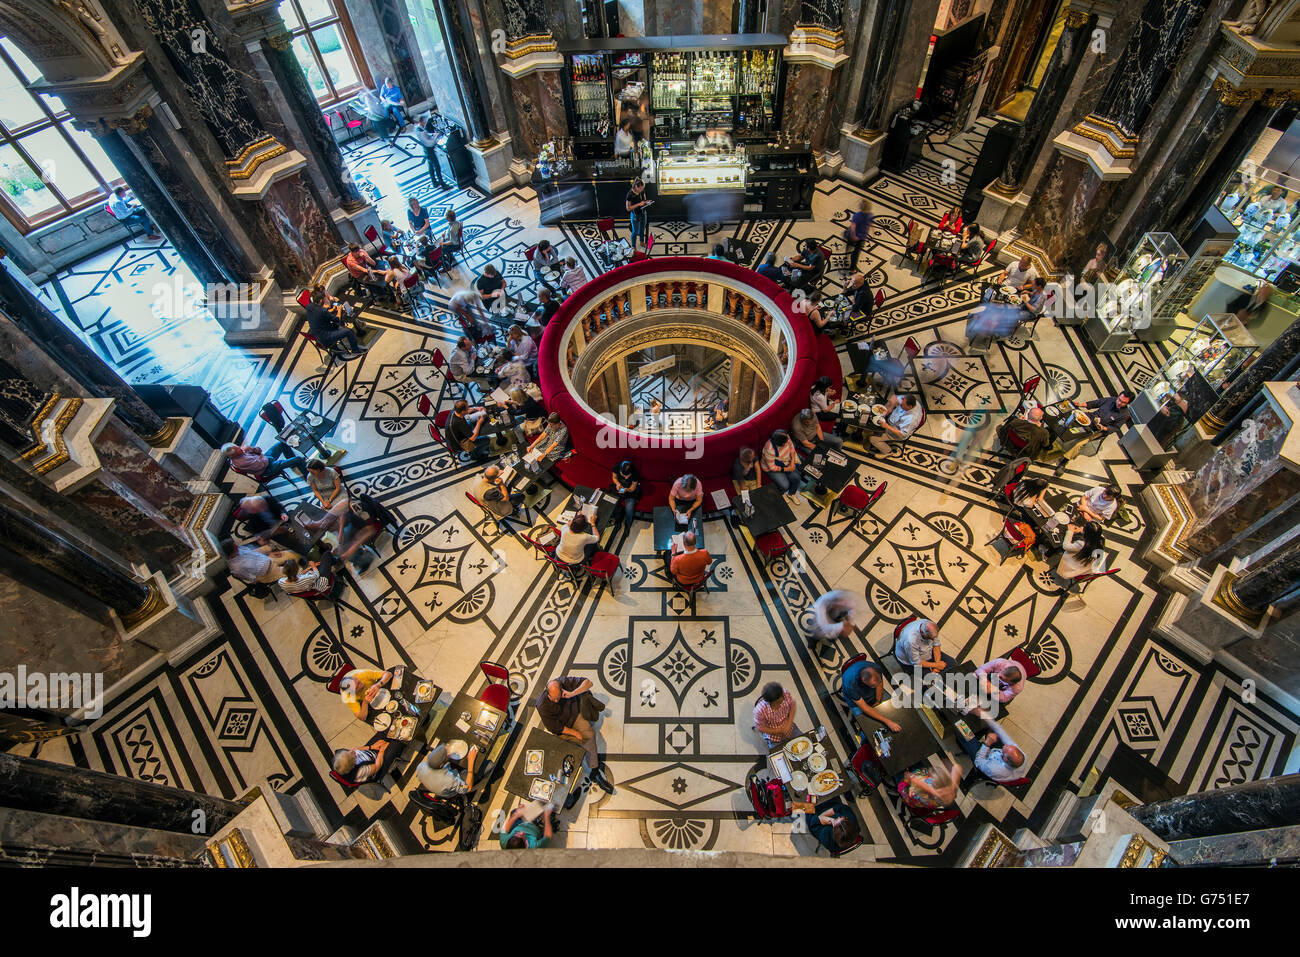 Cafe inside the Kunsthistorisches Museum or Museum of Art History, Vienna, Austria Stock Photo